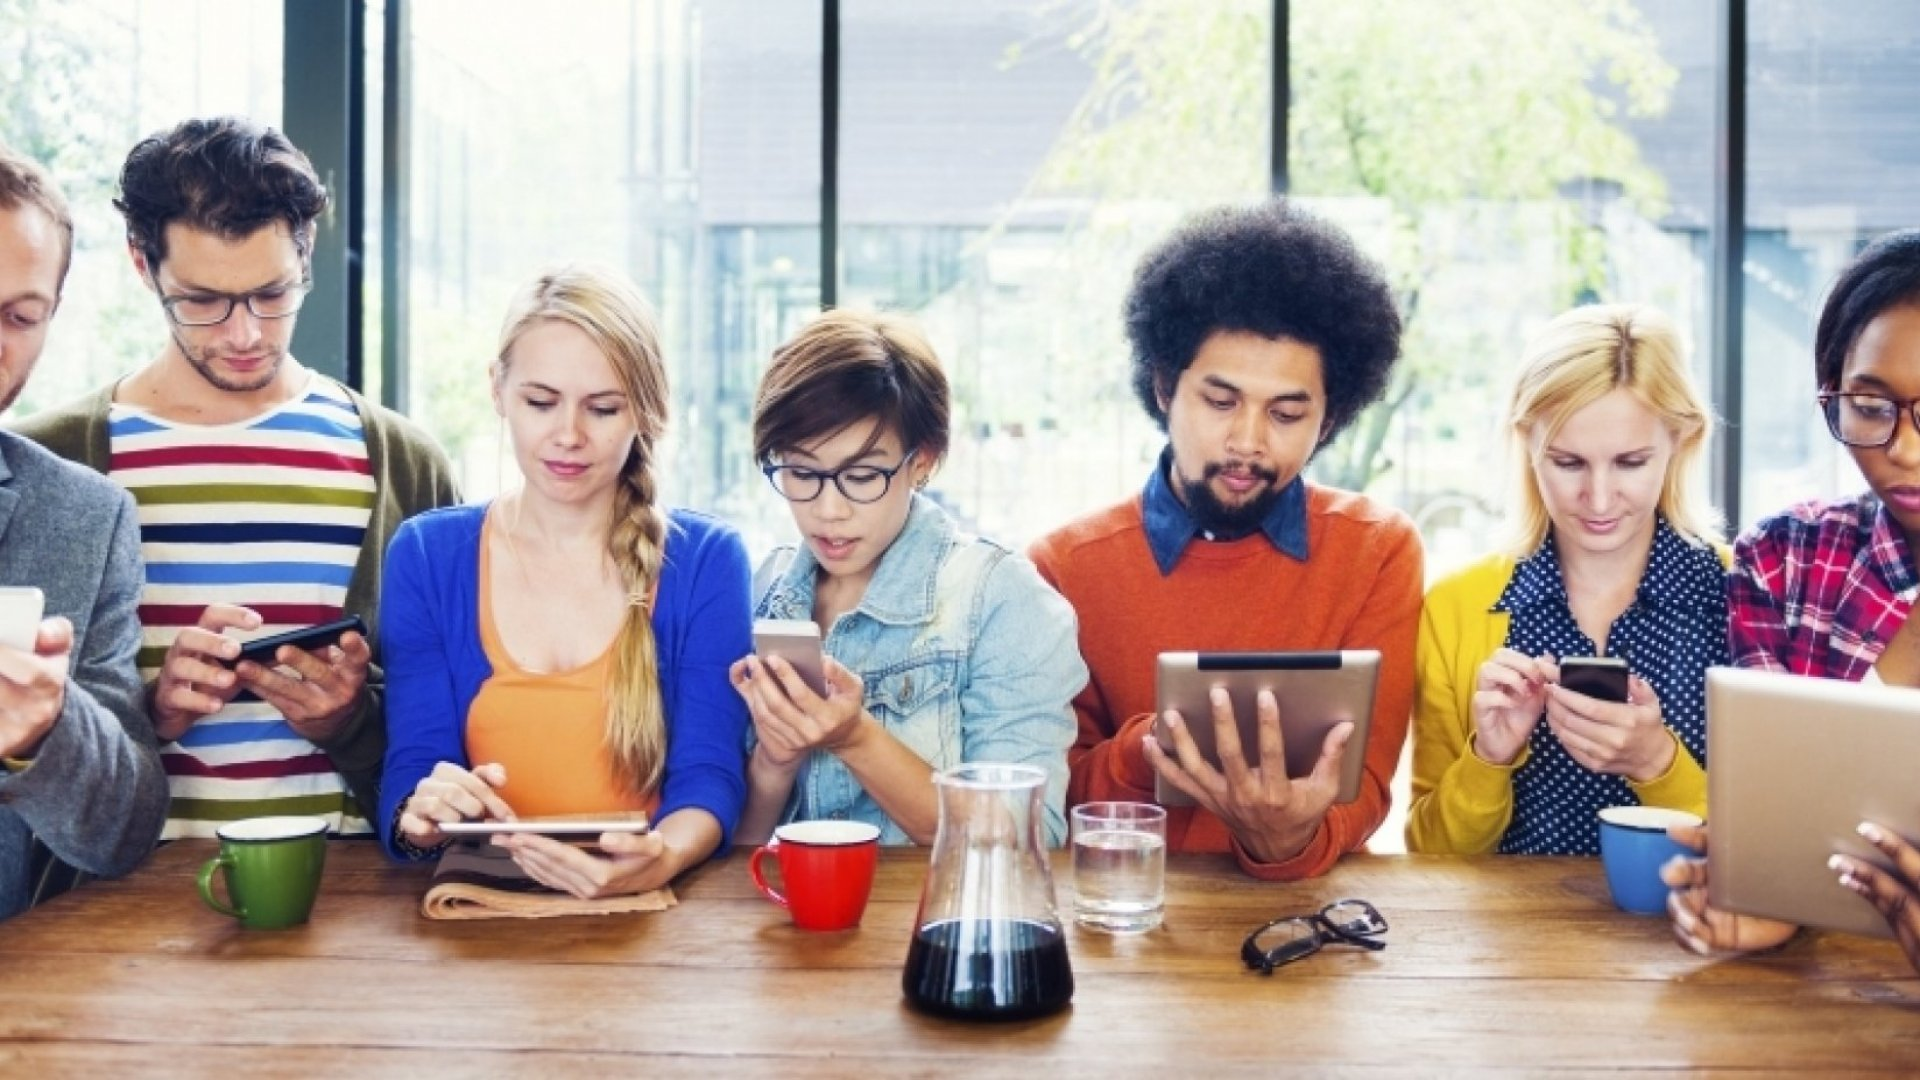 6 Things You Must Do to Be Successful With Social Media